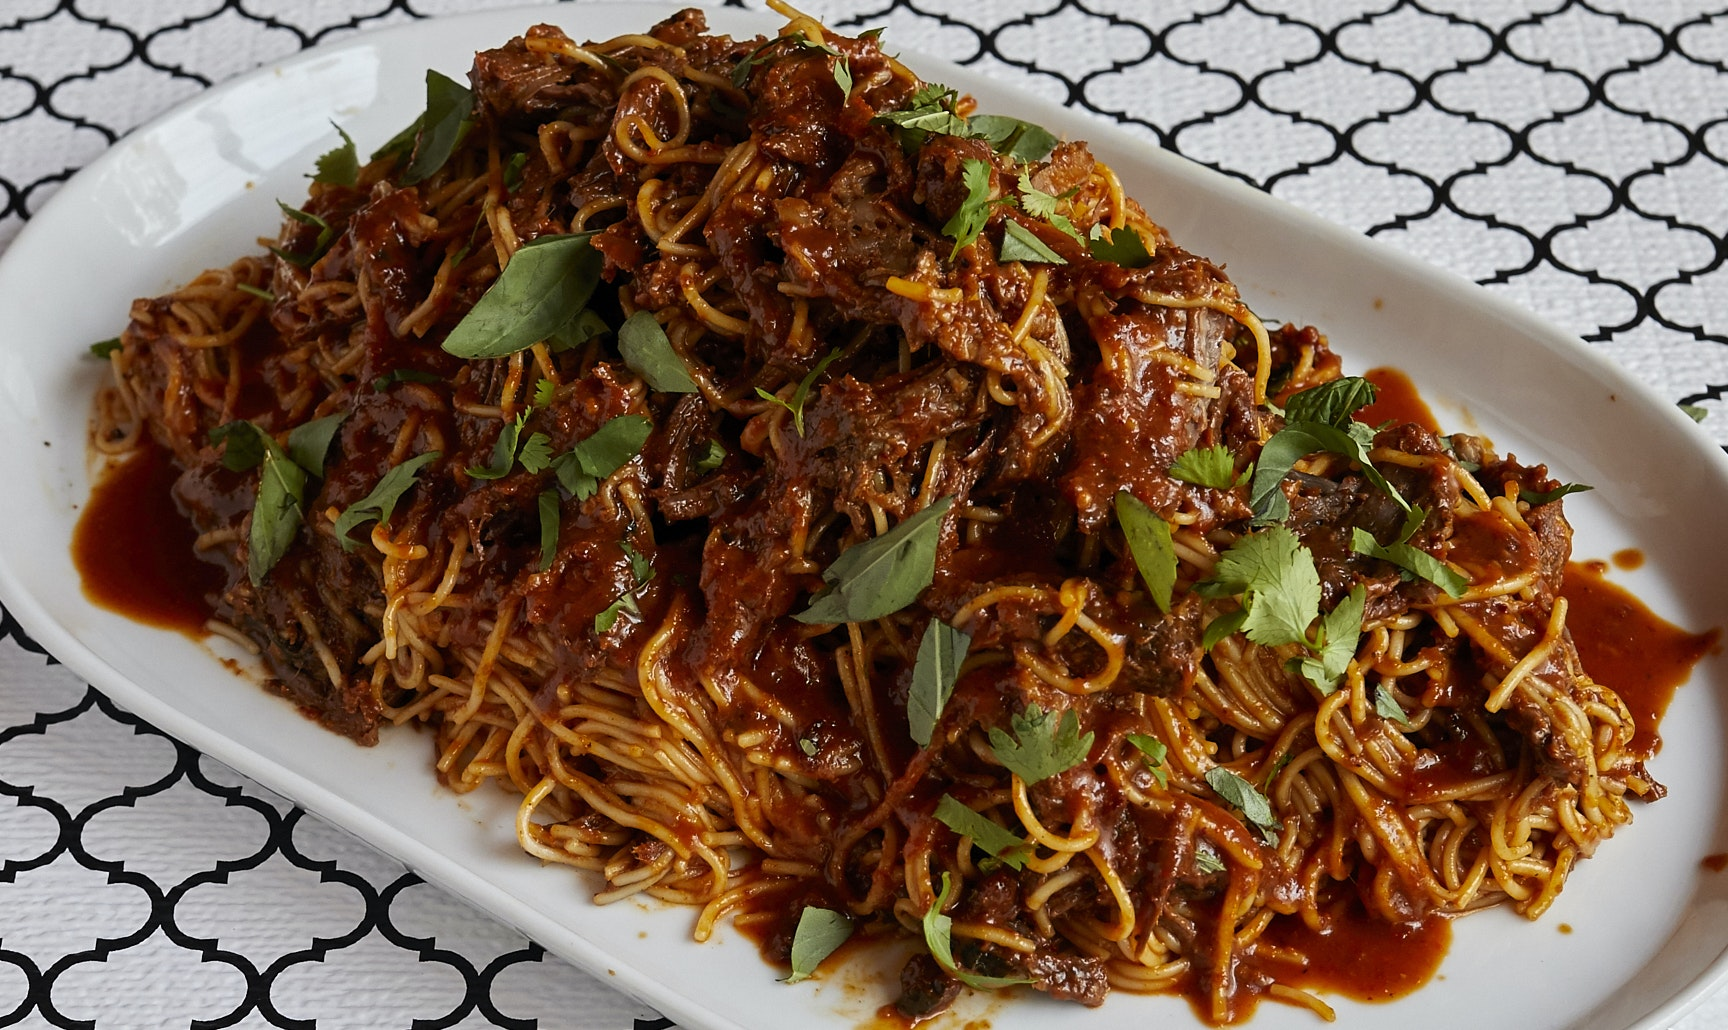 Spicy Beef Noodles (Serves 5)